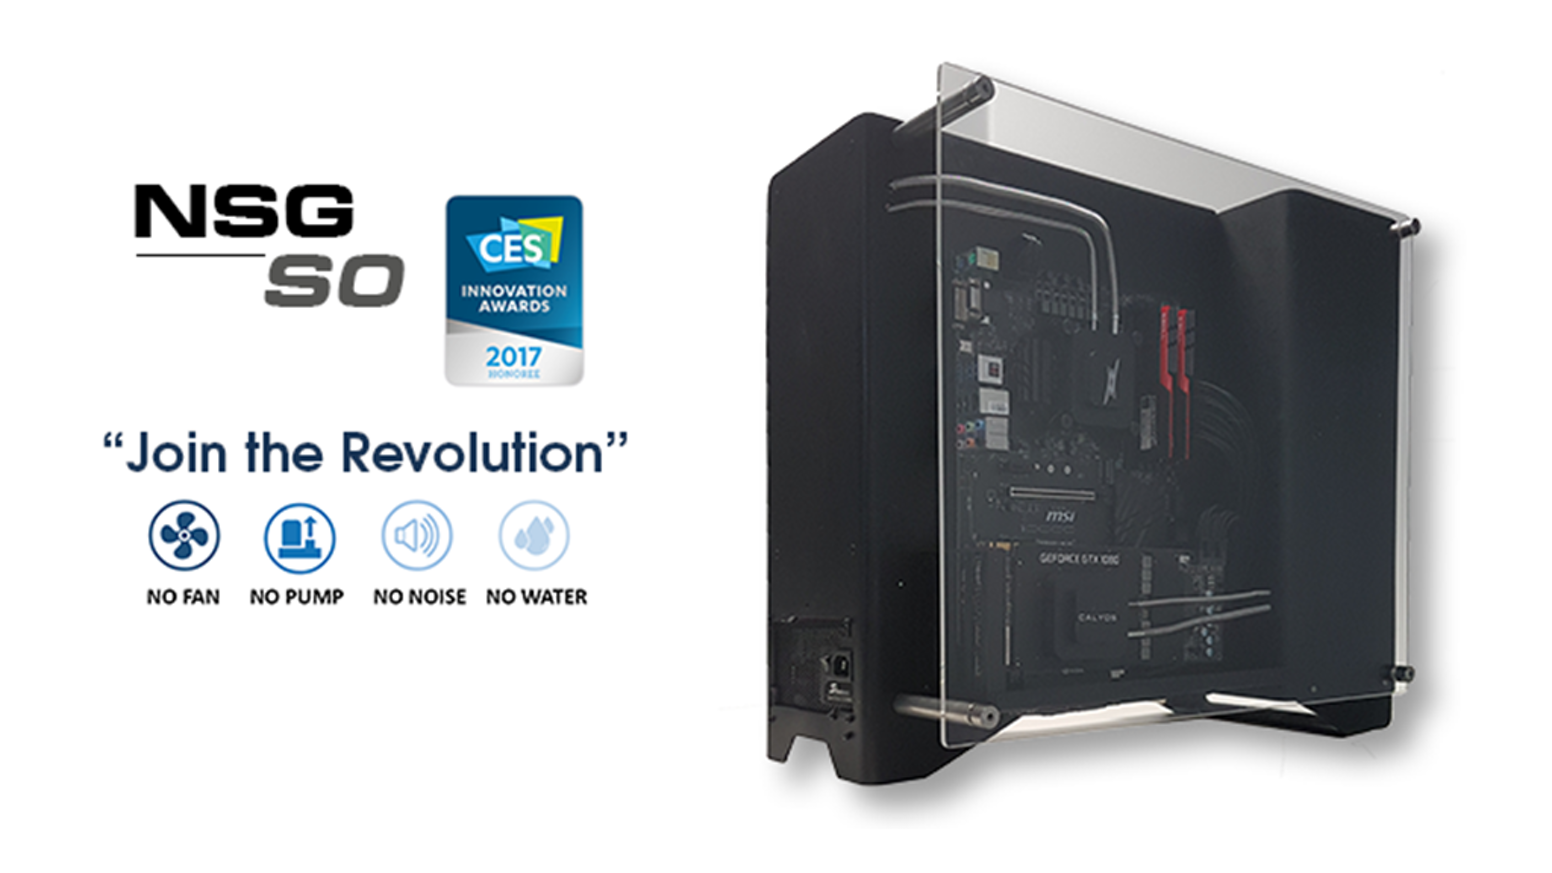 Calyos is the global leader in Advanced 2-Phase Cooling Solutions for electronic components. Join the Phase-Change revolution.